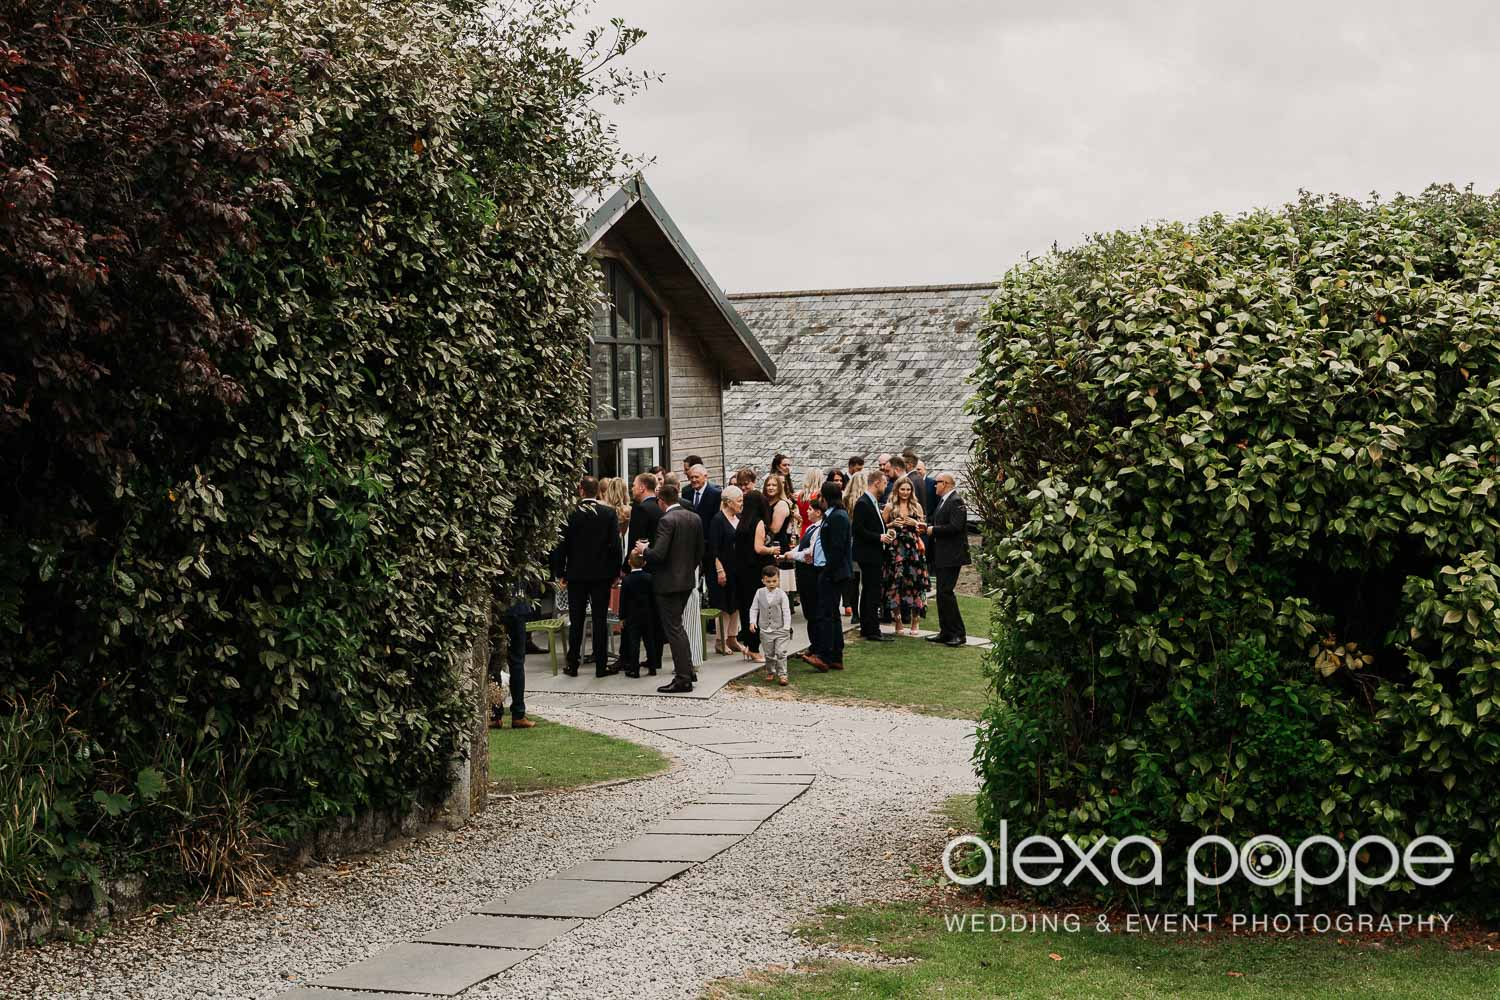 NT_wedding_thegreen_cornwall_3.jpg